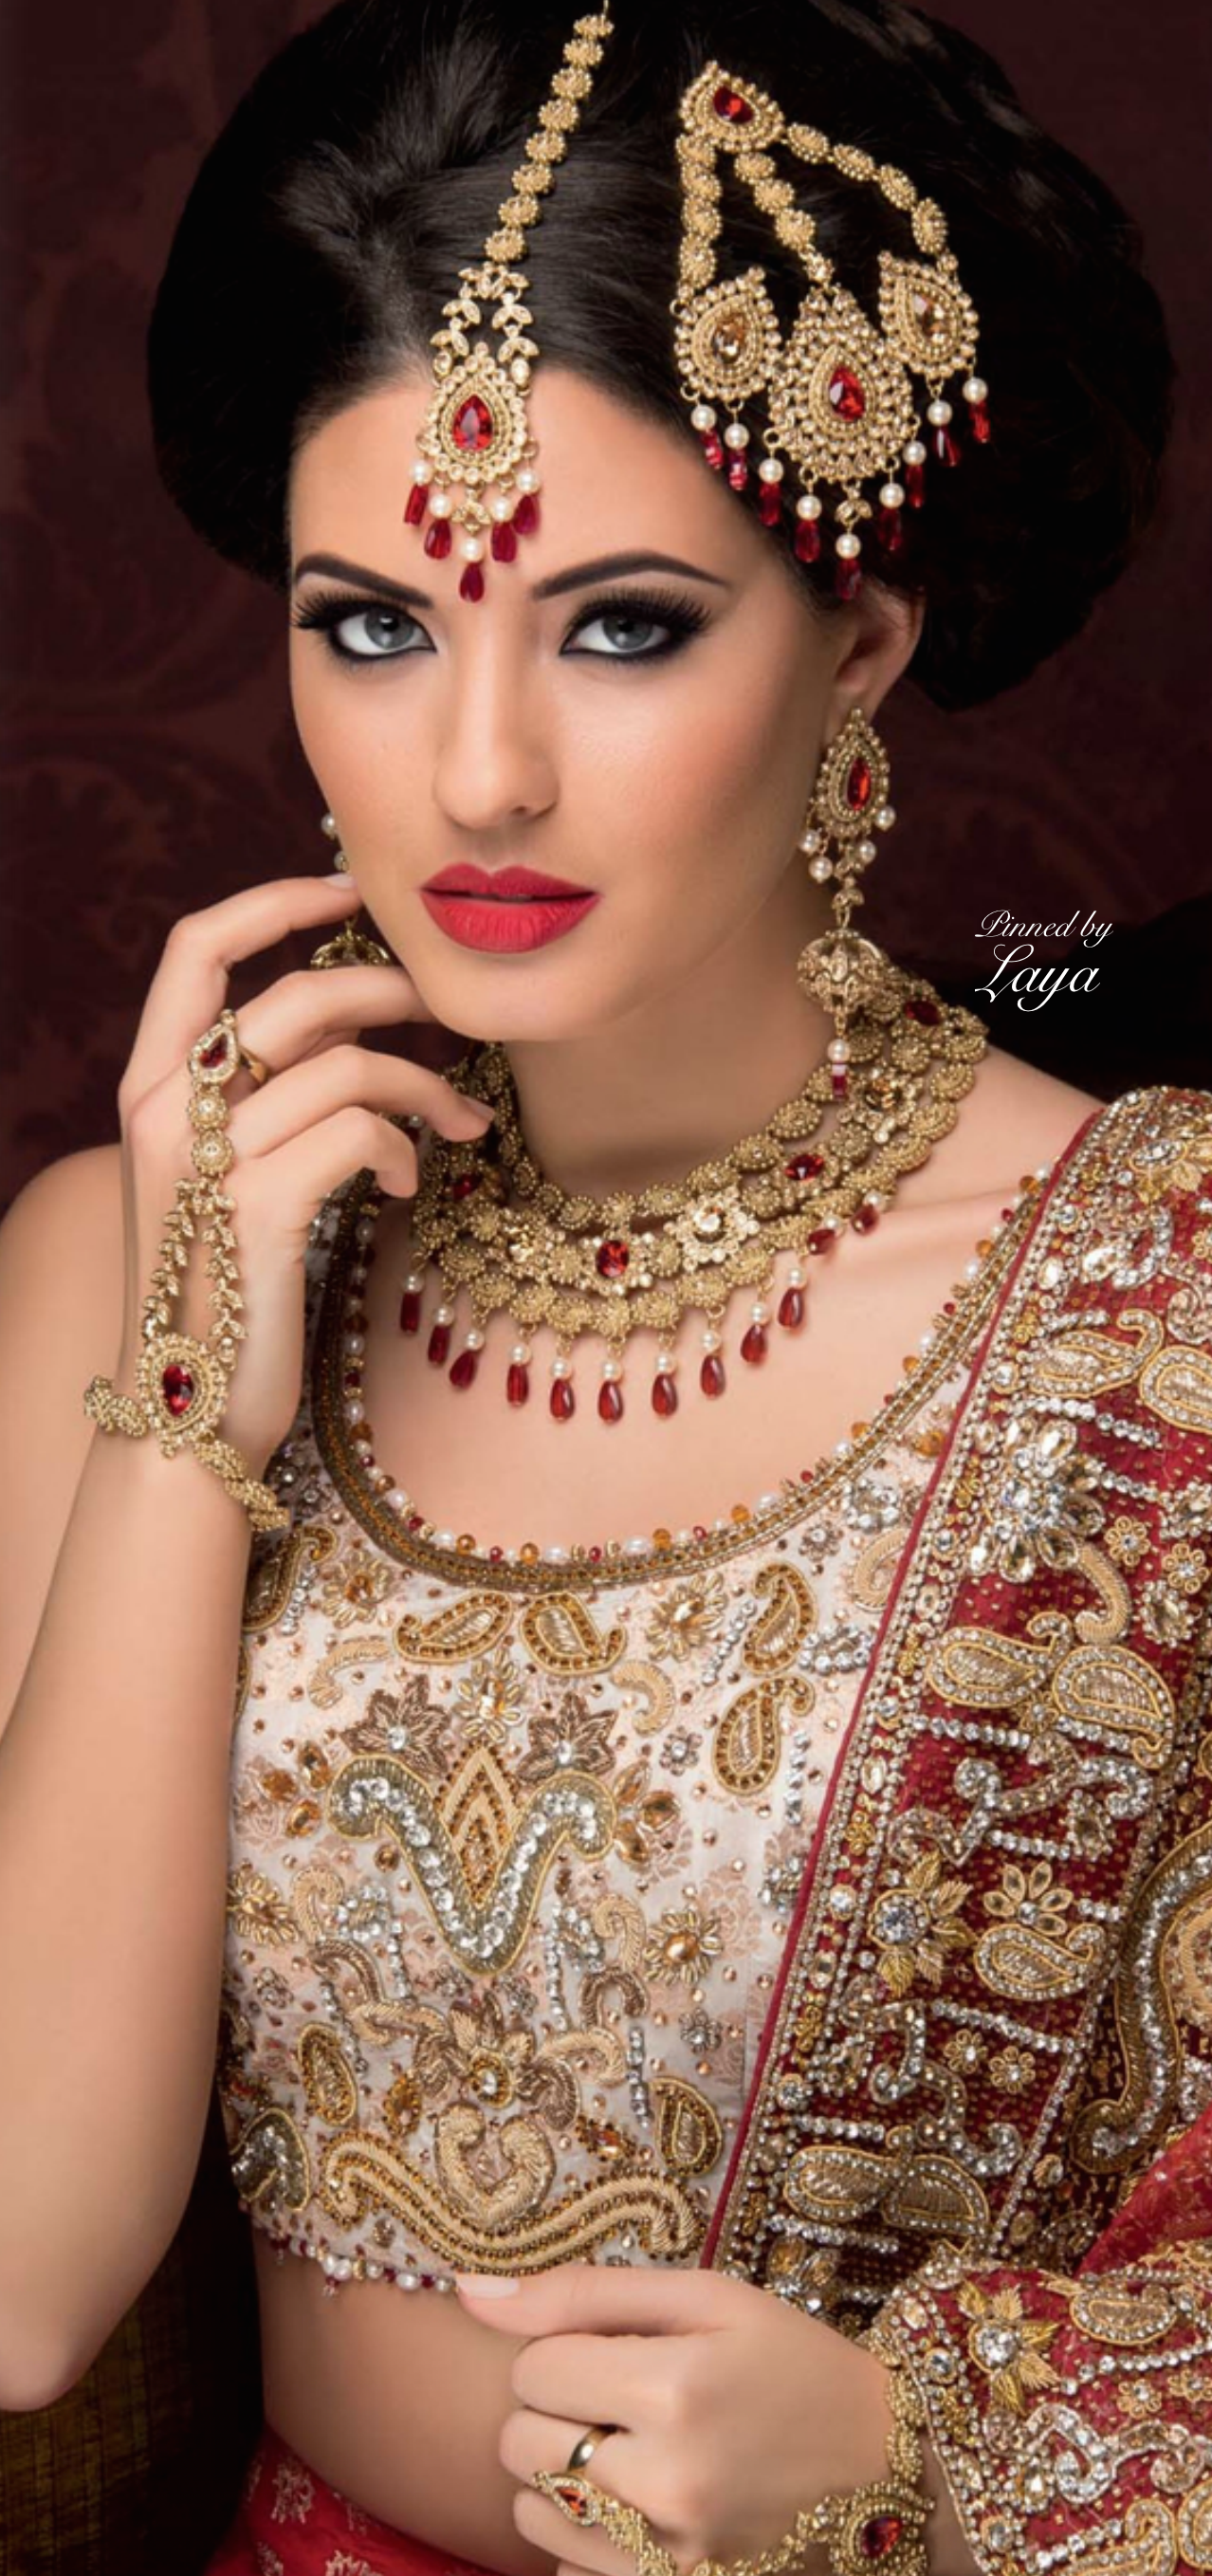 Jewels pinterest beautiful indian wedding jewellery and jewellery - Indian Bridal Jewelry Pakistani Bridal Jewelry But Now A Day This Trend Become Out Of Function In The Market Many Kinds Of Artificial Jewelry Is